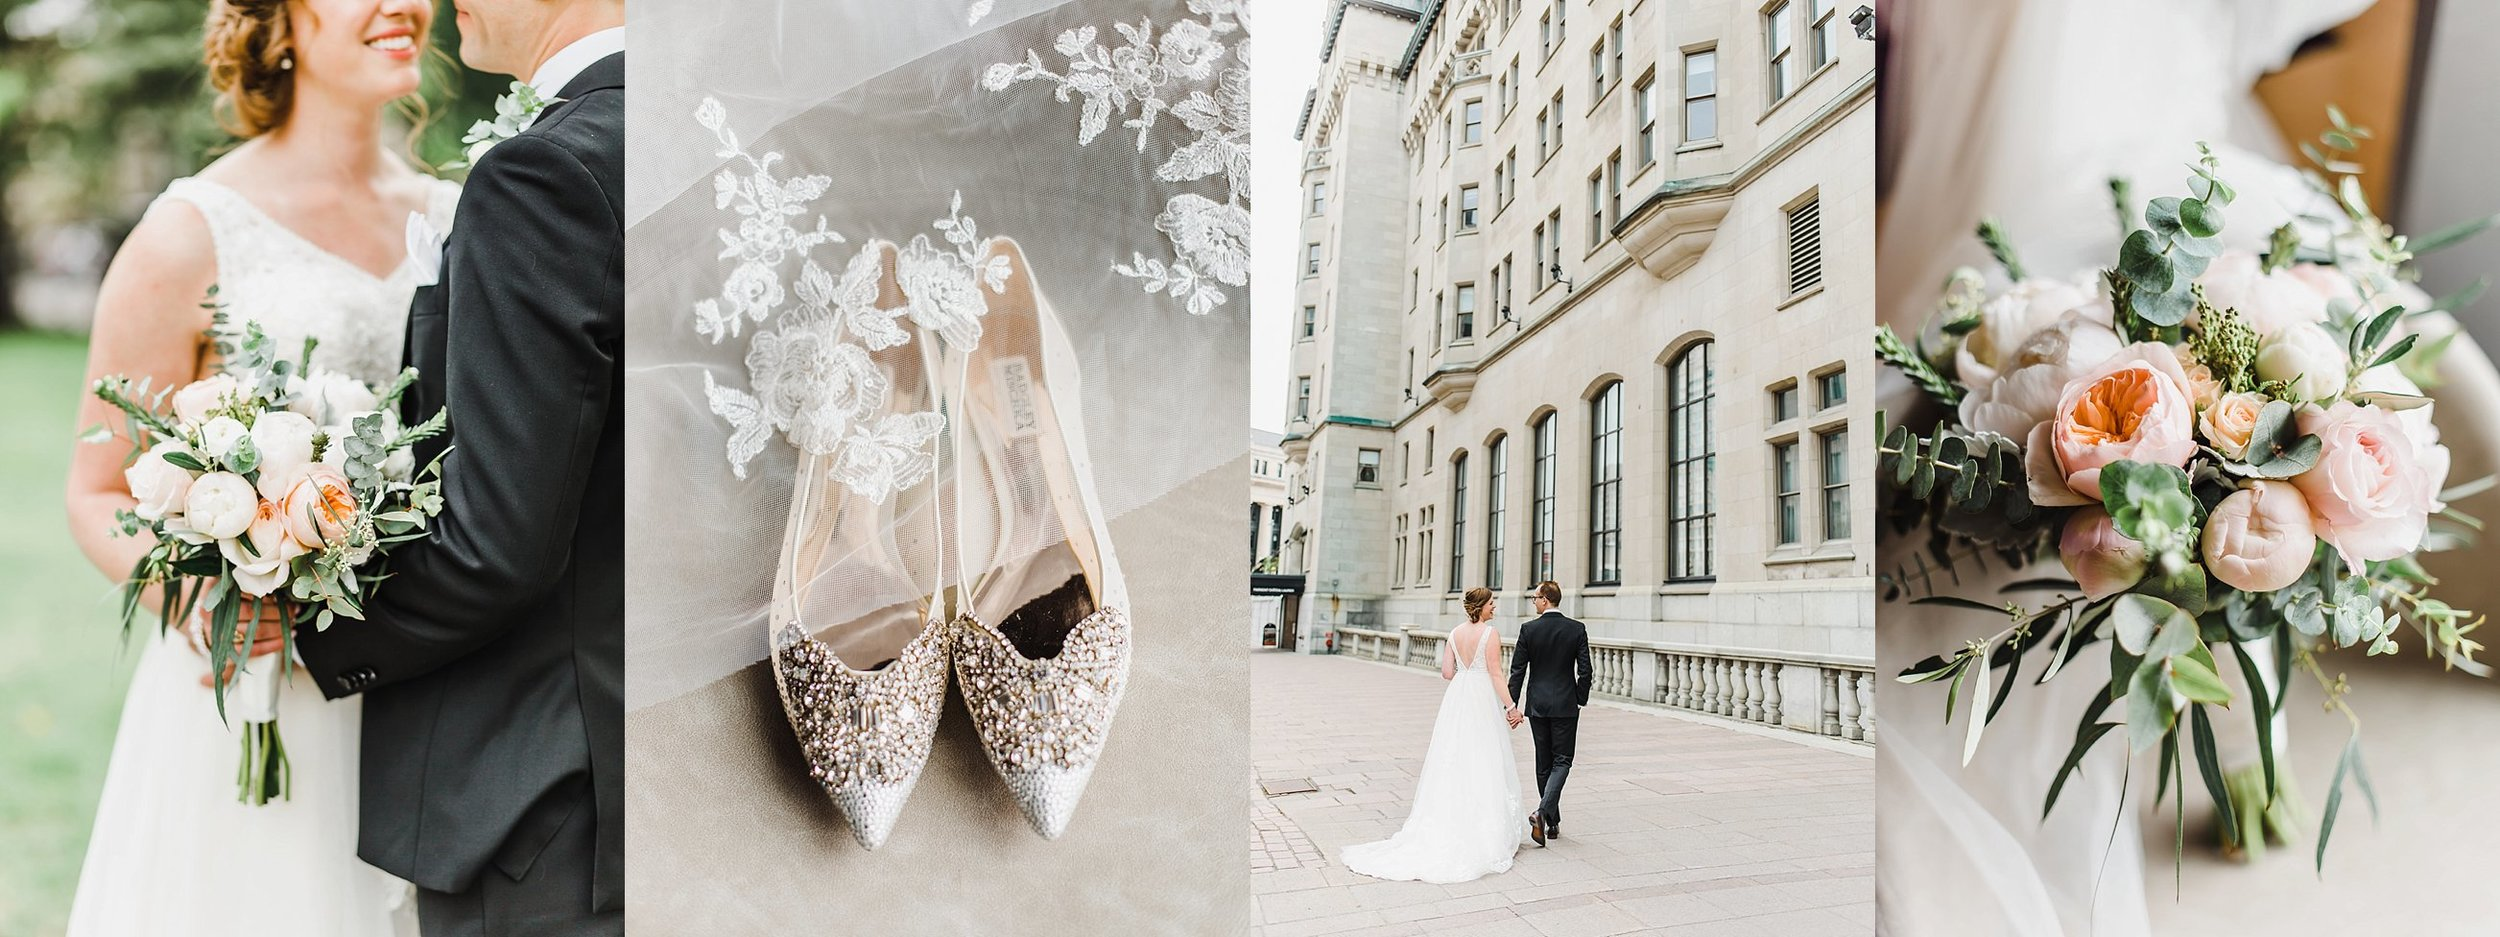 light airy indie fine art ottawa wedding photographer | Ali and Batoul Photography_0432.jpg